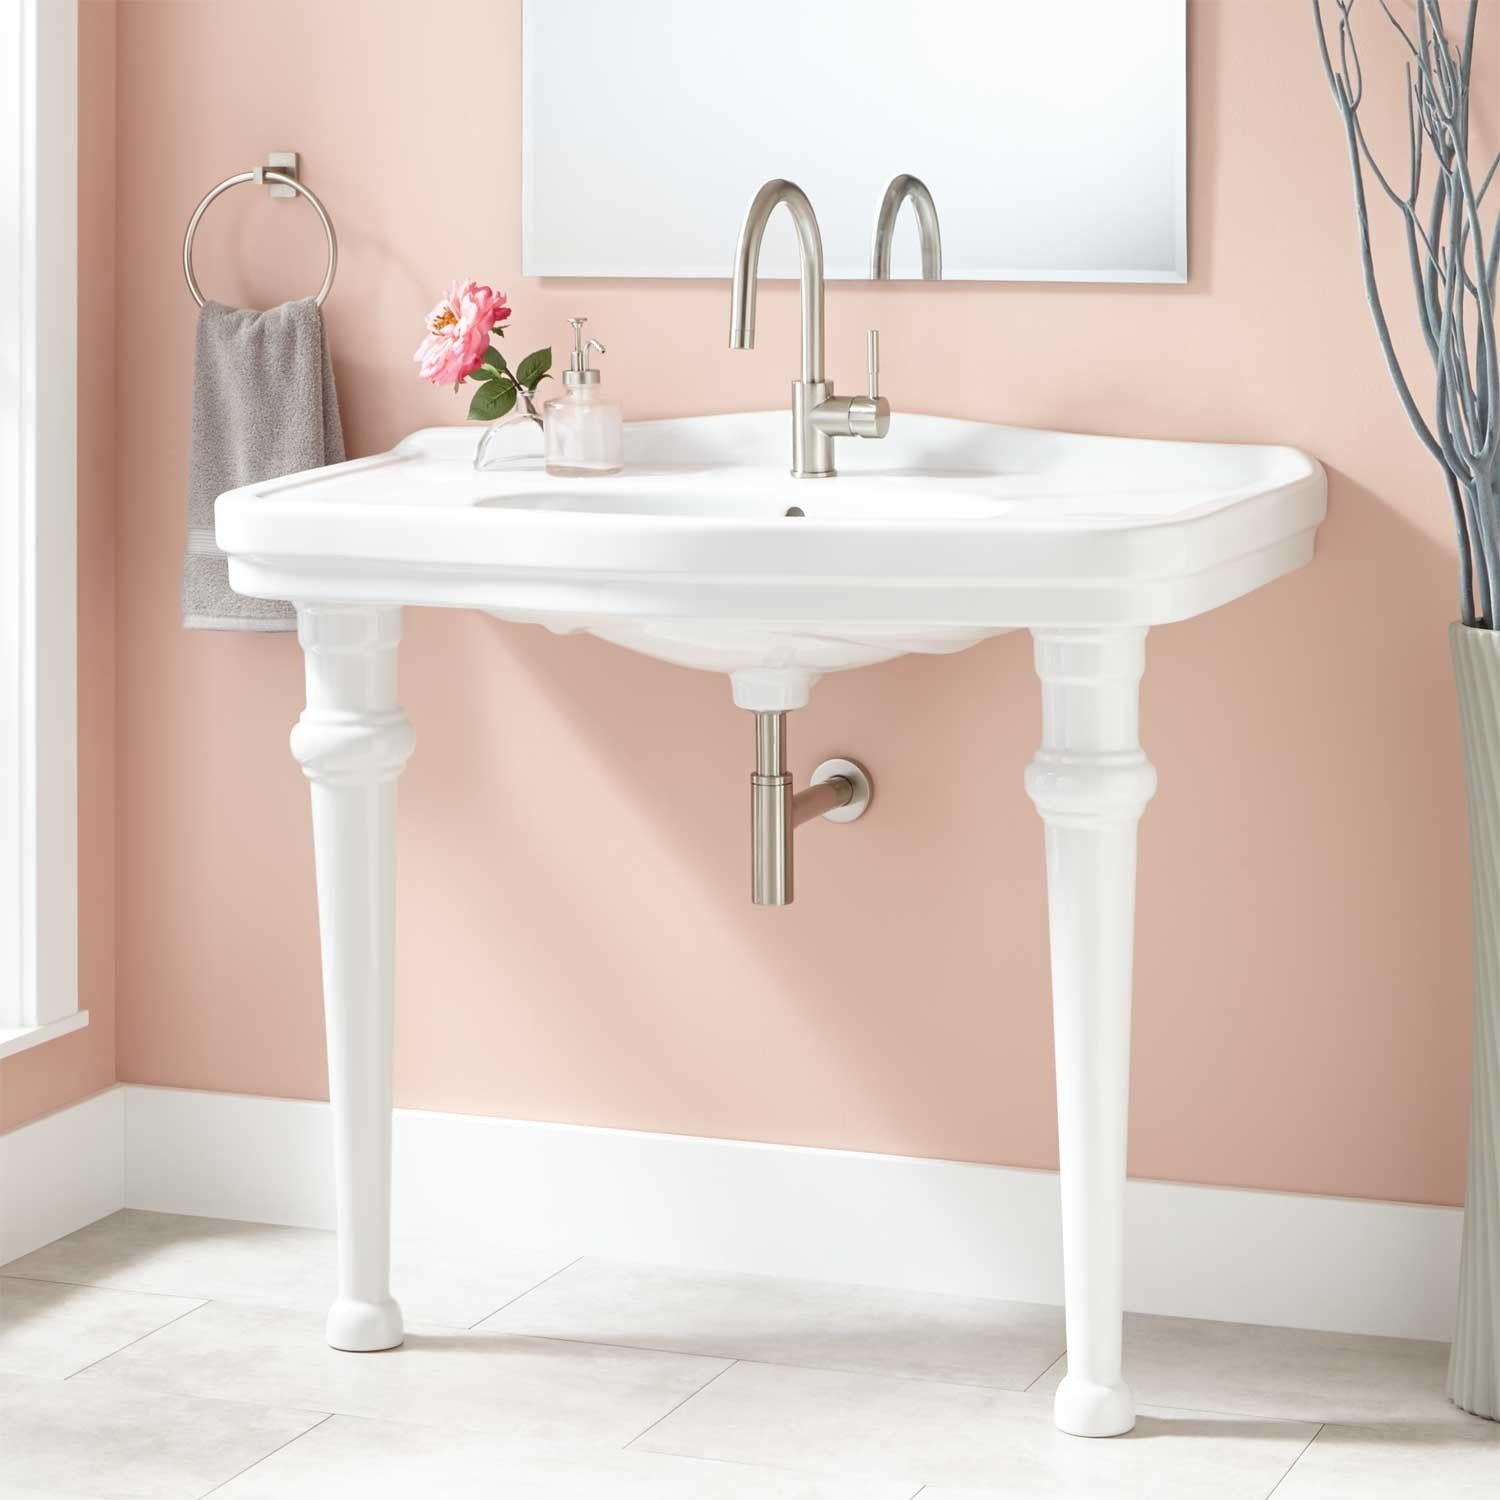 Final 42 Peloso Console Sink From Signature Hardware Online 919 95 With Drain And